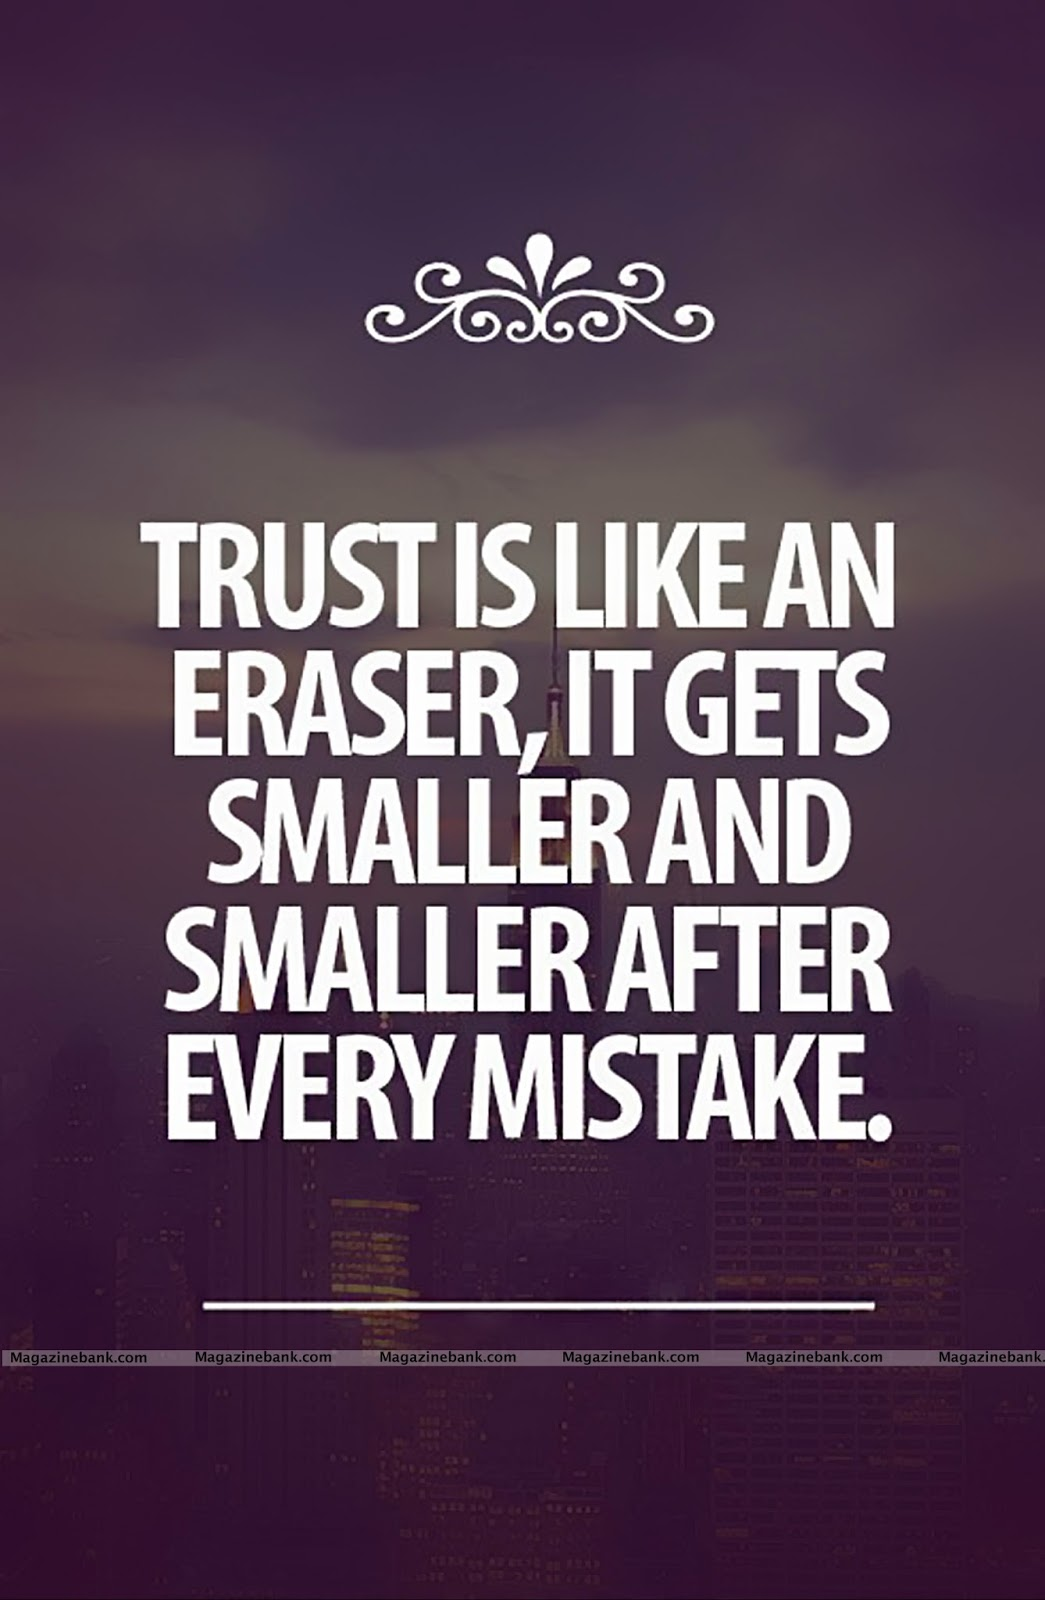 Quotes Tagalog About Friendship Quotes About Trust Issues And Lies In A Relationshiop And Love